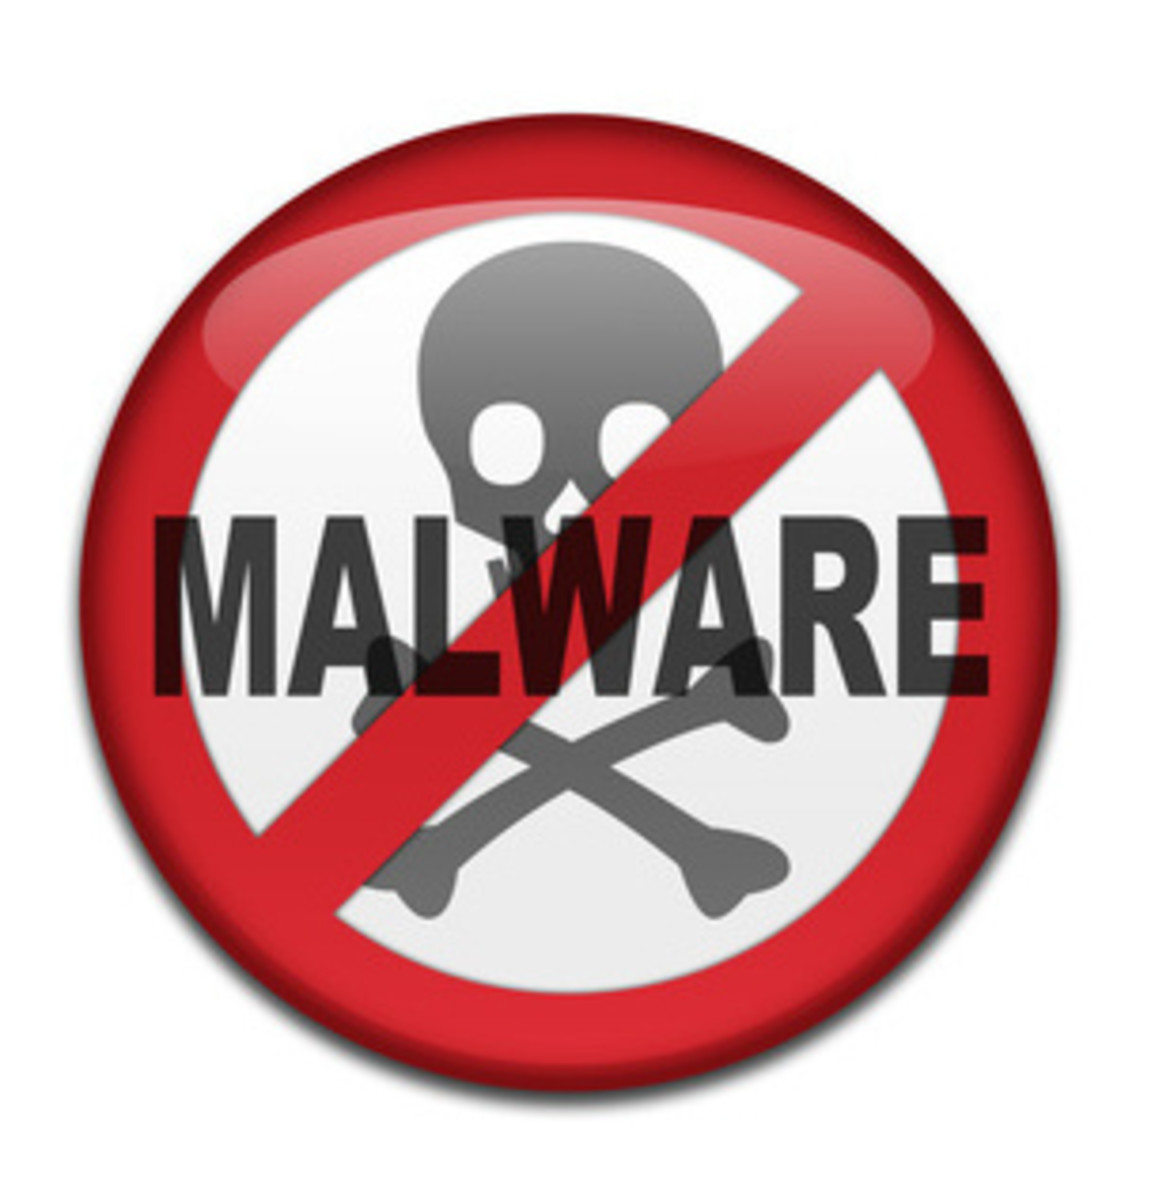 Malware is everywhere online. You must have a malware removal tool to protect your PC